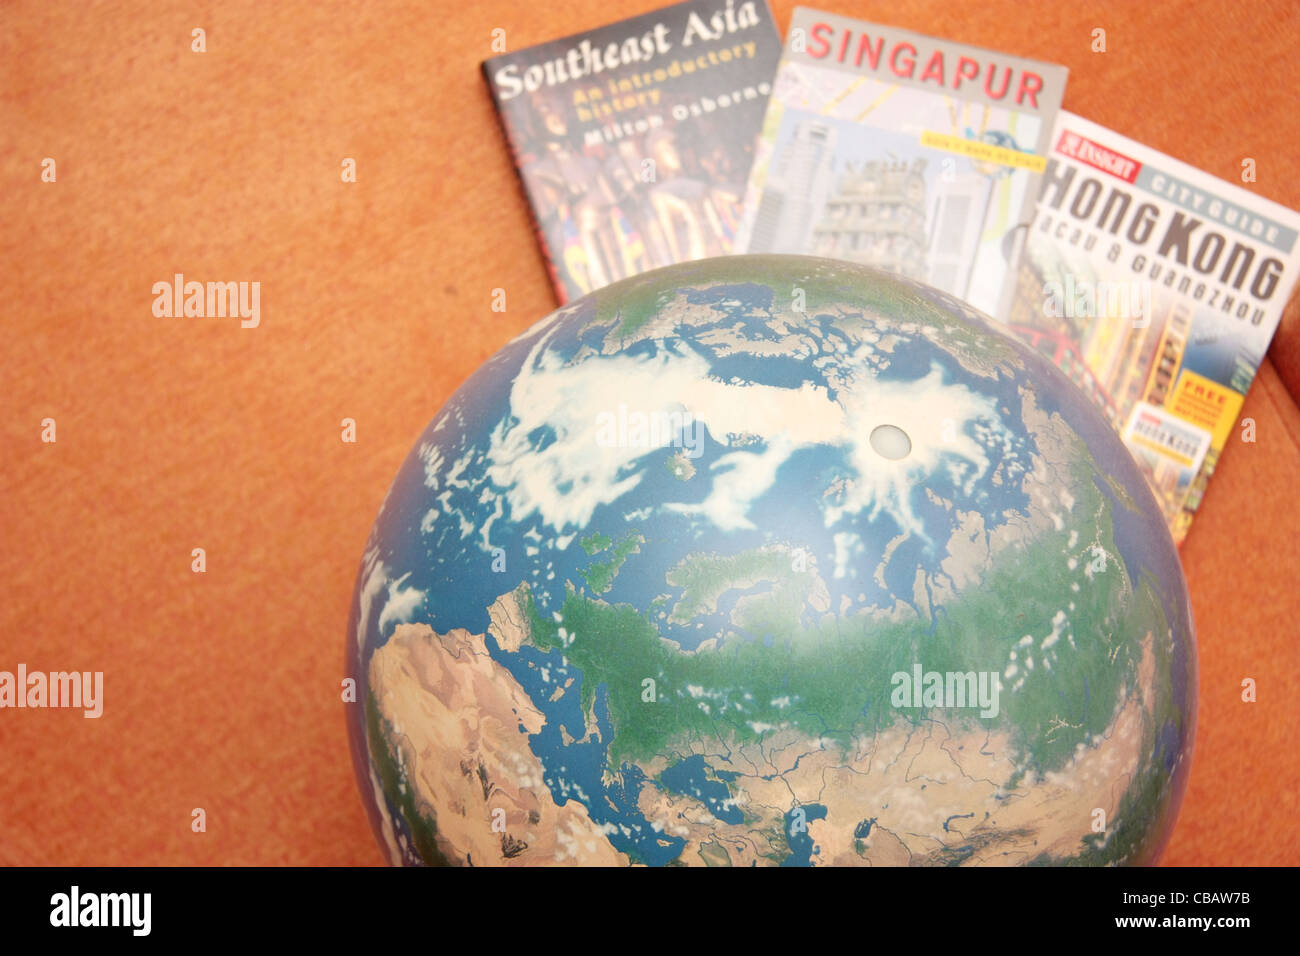 Globe with travel guide books - Stock Image